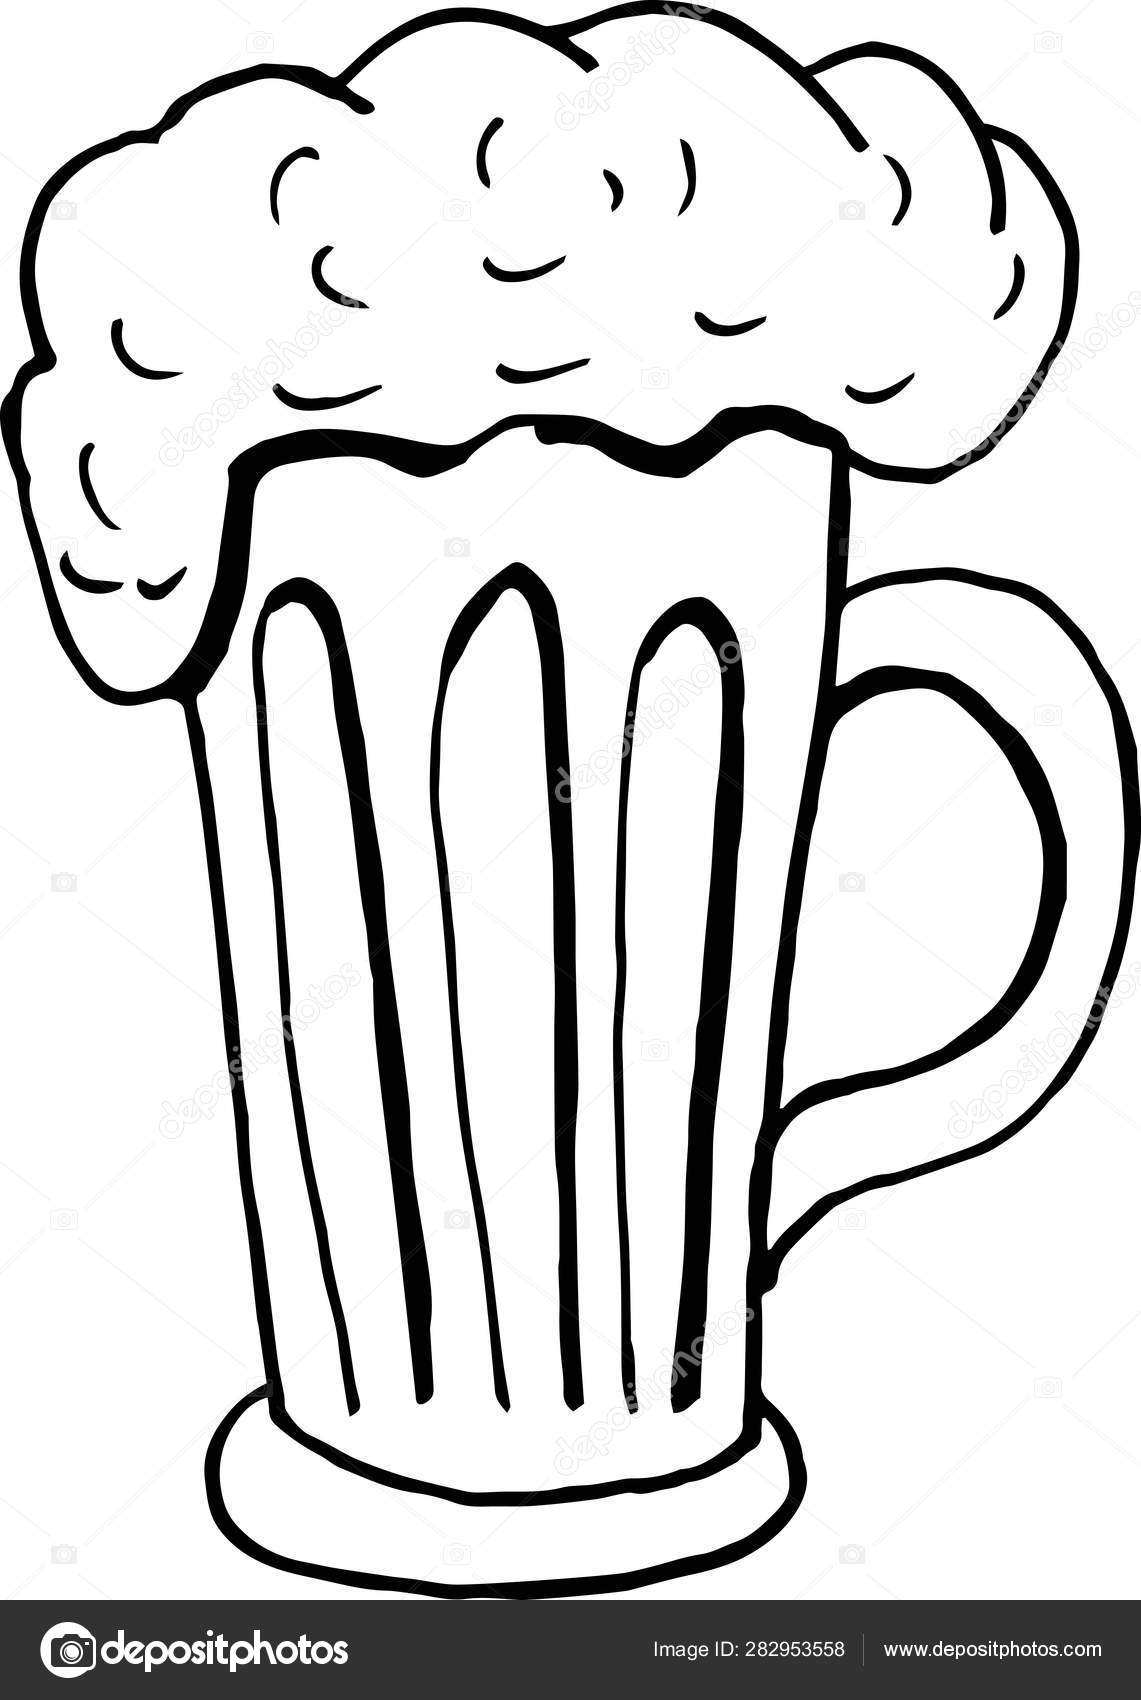 Hand Drawing Beer Mug With Foam On A White Background Doodle Vector Illustration Element For Menu And Posters Stock Vector C Anastasiairk Gmail Com 282953558